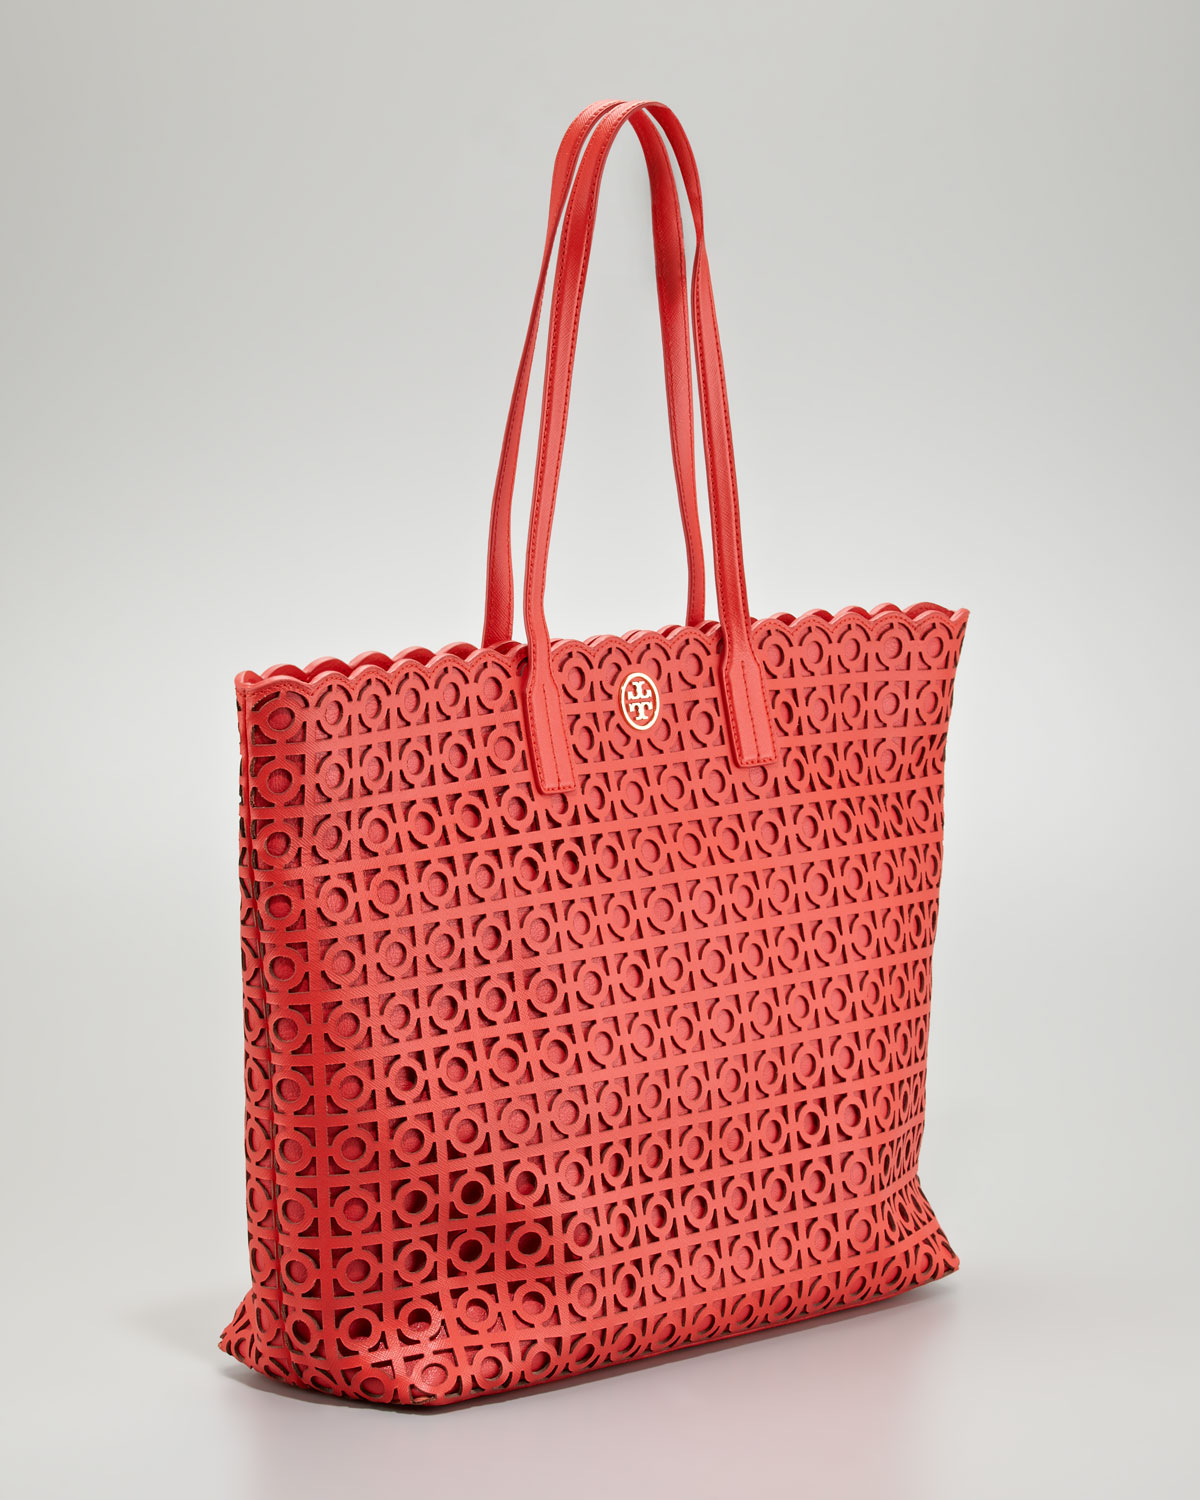 54f48861c9fd Lyst - Tory Burch Kelsey Lasercut Eastwest Tote Bag in Red